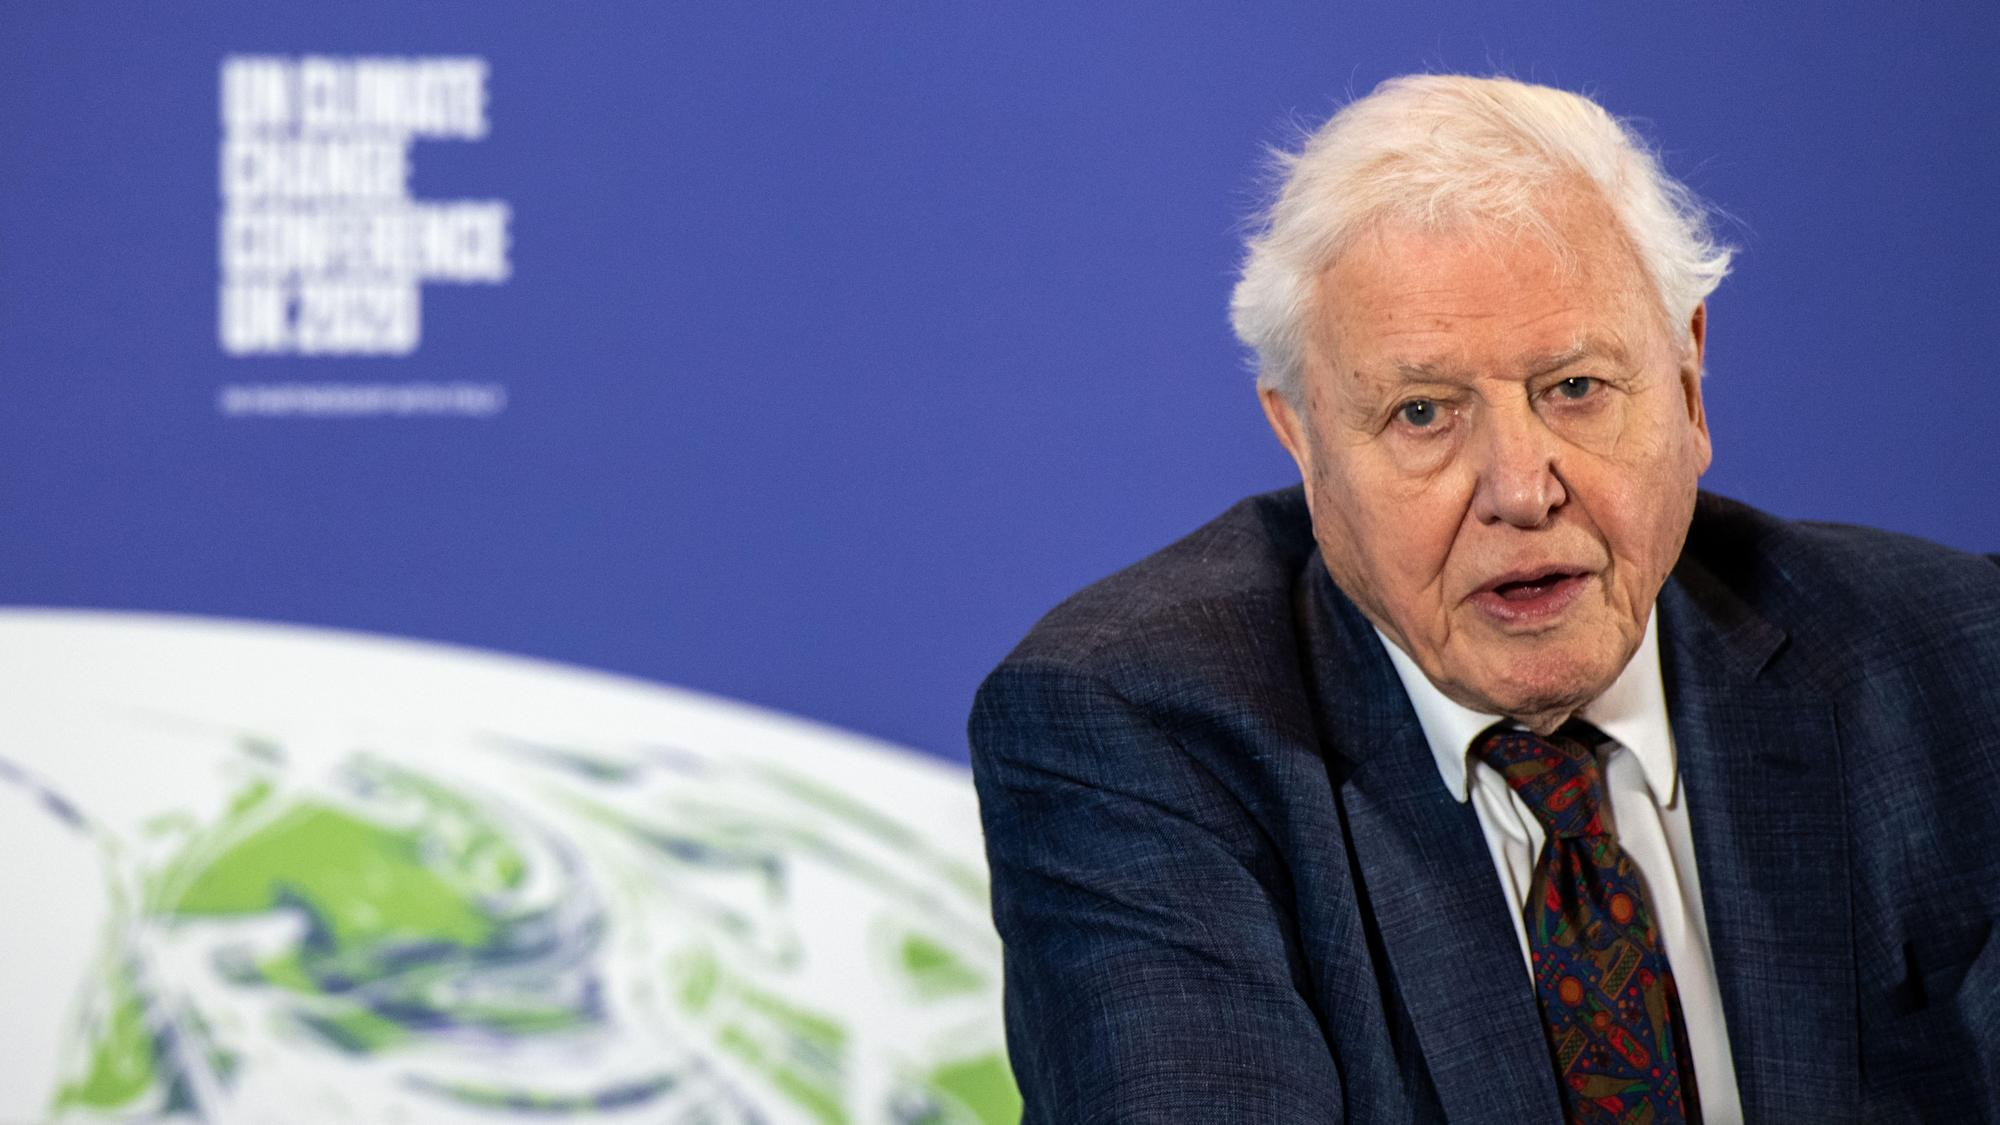 Sir David Attenborough enjoyed 'completely different soundtrack' of lockdown